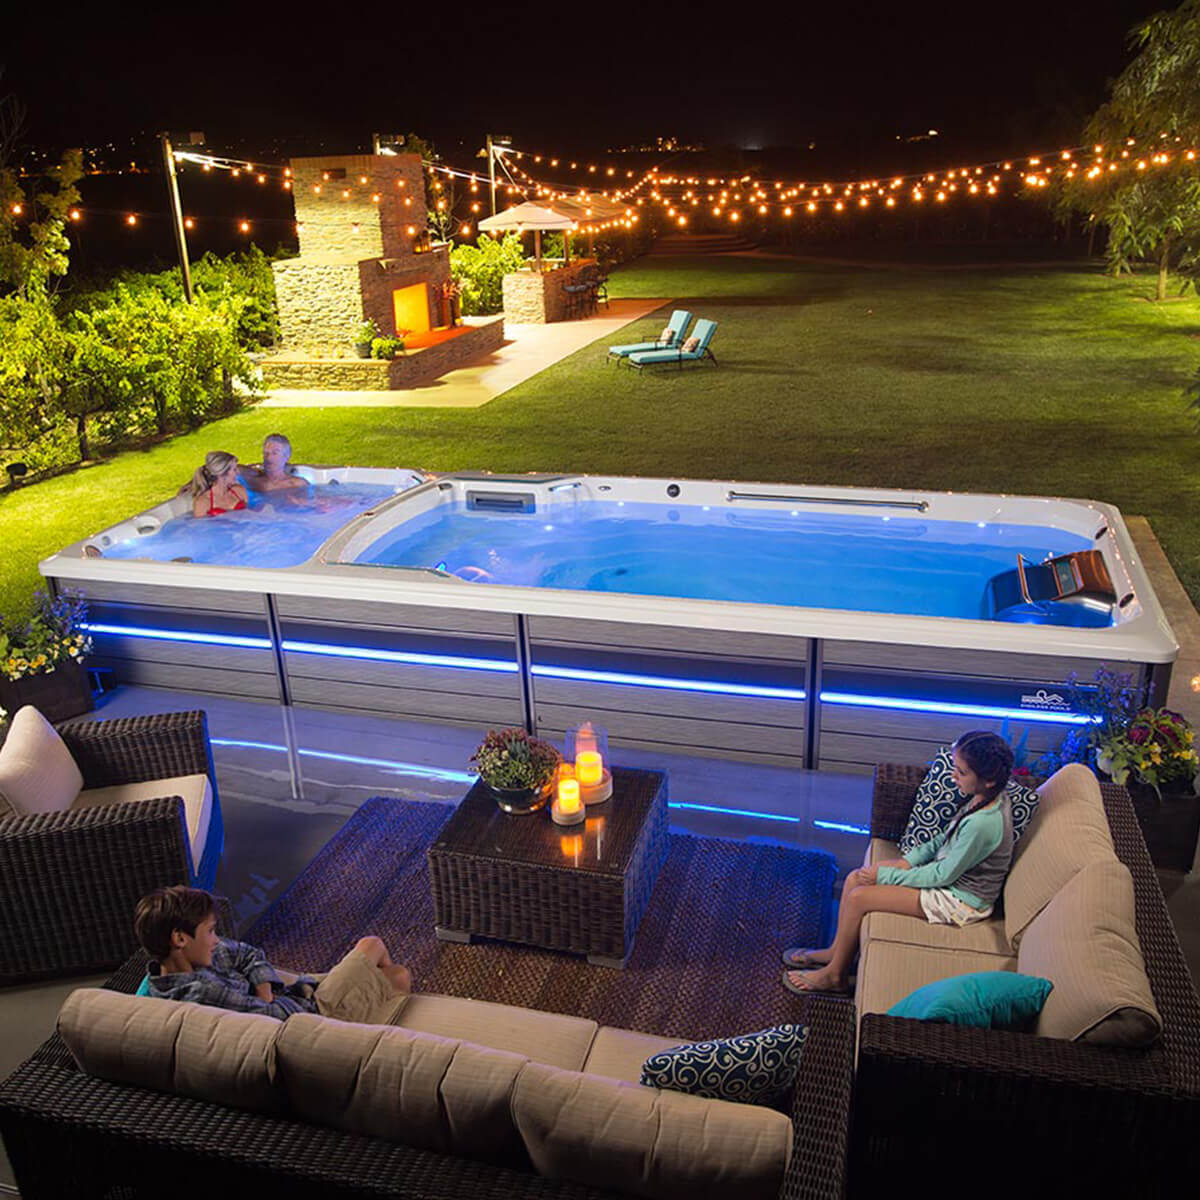 Is your backyard Fourth of July ready?